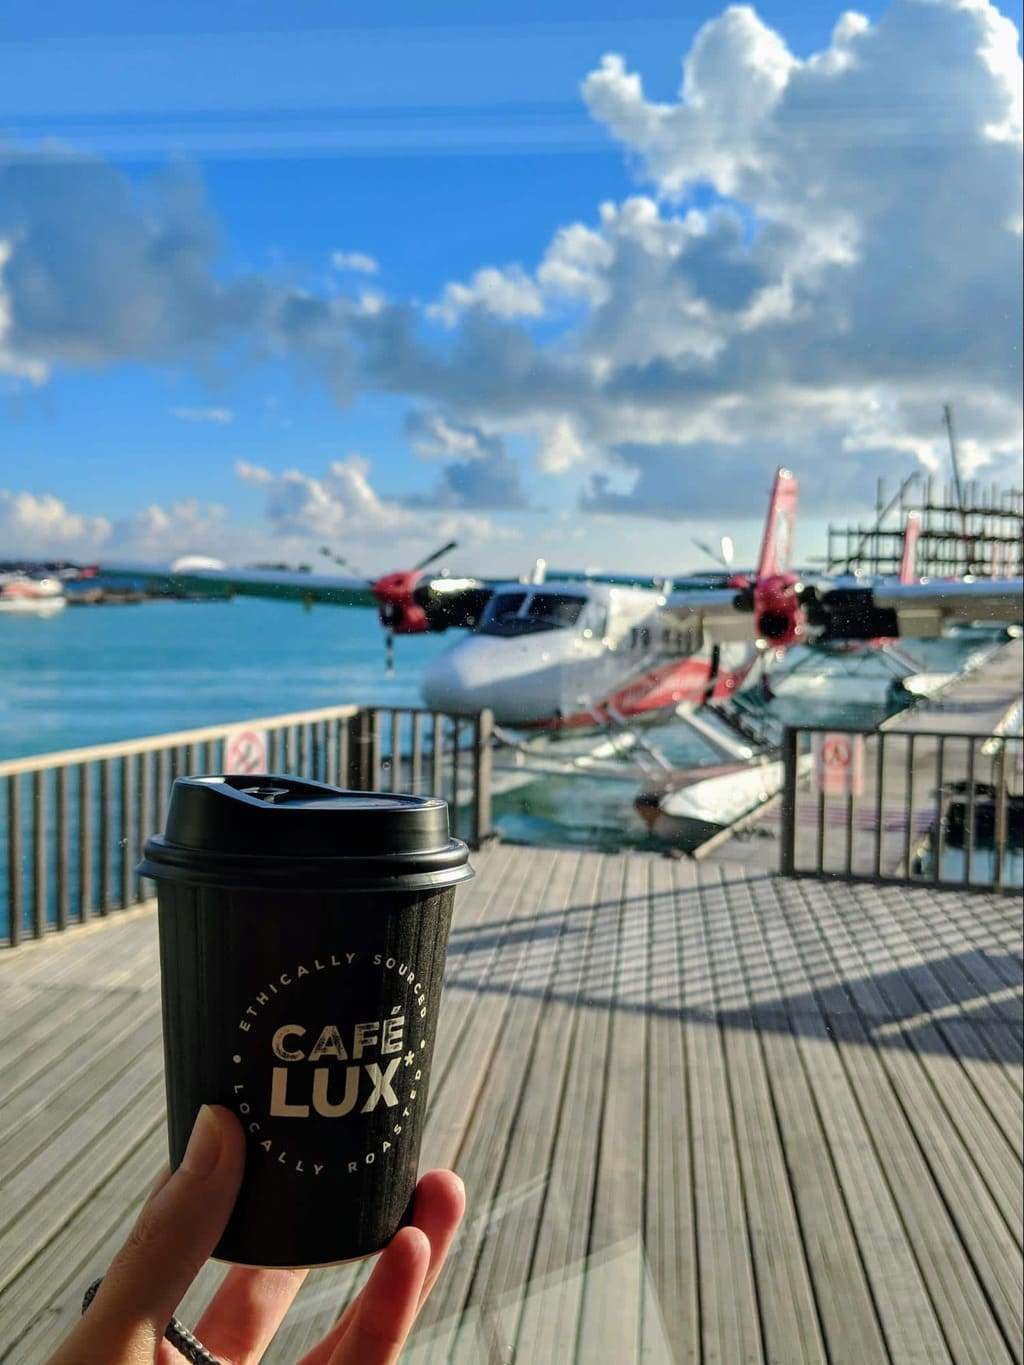 LUX* coffee - one of the brand's promises